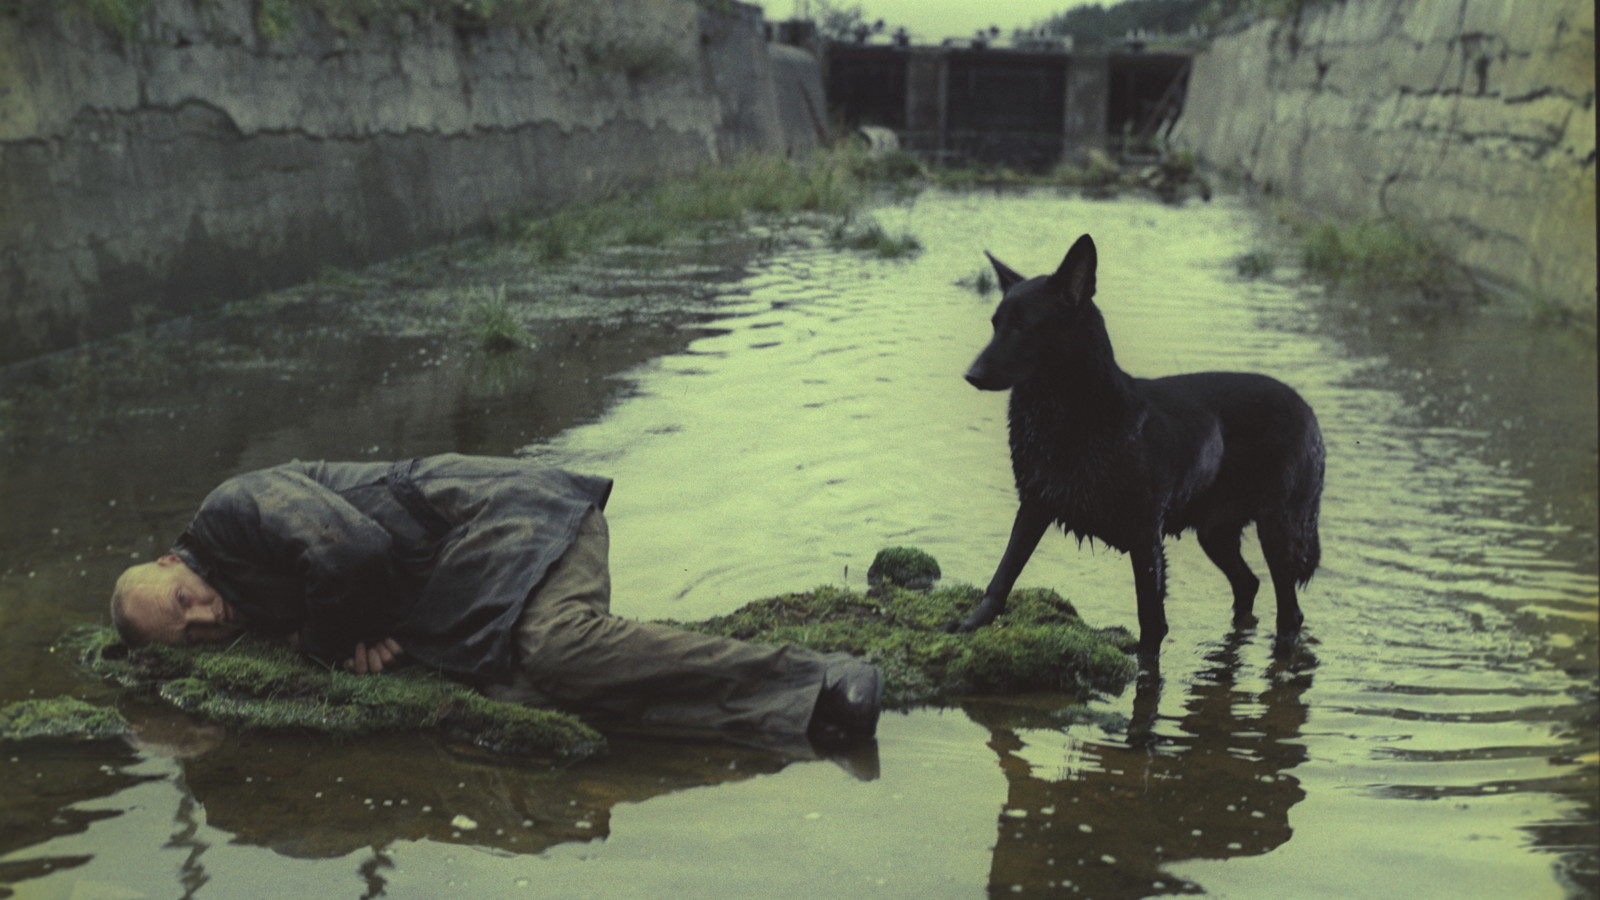 Tarkovsky's Stalker - New Restoration - culture - Tarkovsky, StyleZeitgeist, Stalker, Russian film, Lincoln Center Film Society, Lincoln Center, film, Andrei Tarkvosky, 2017